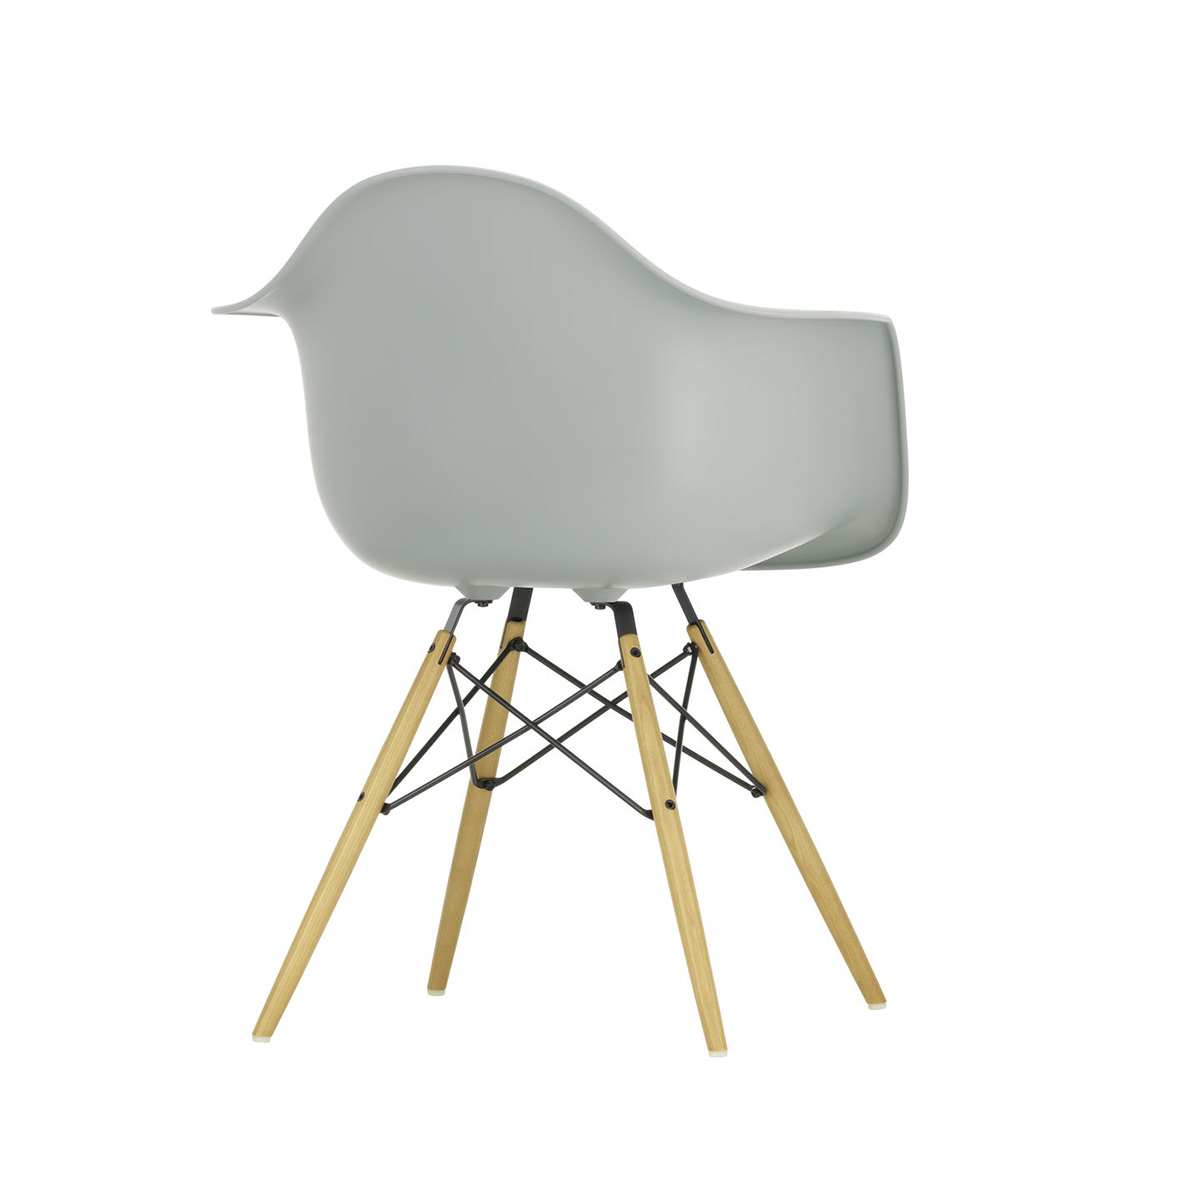 gallery-13586-for-VITRA0124